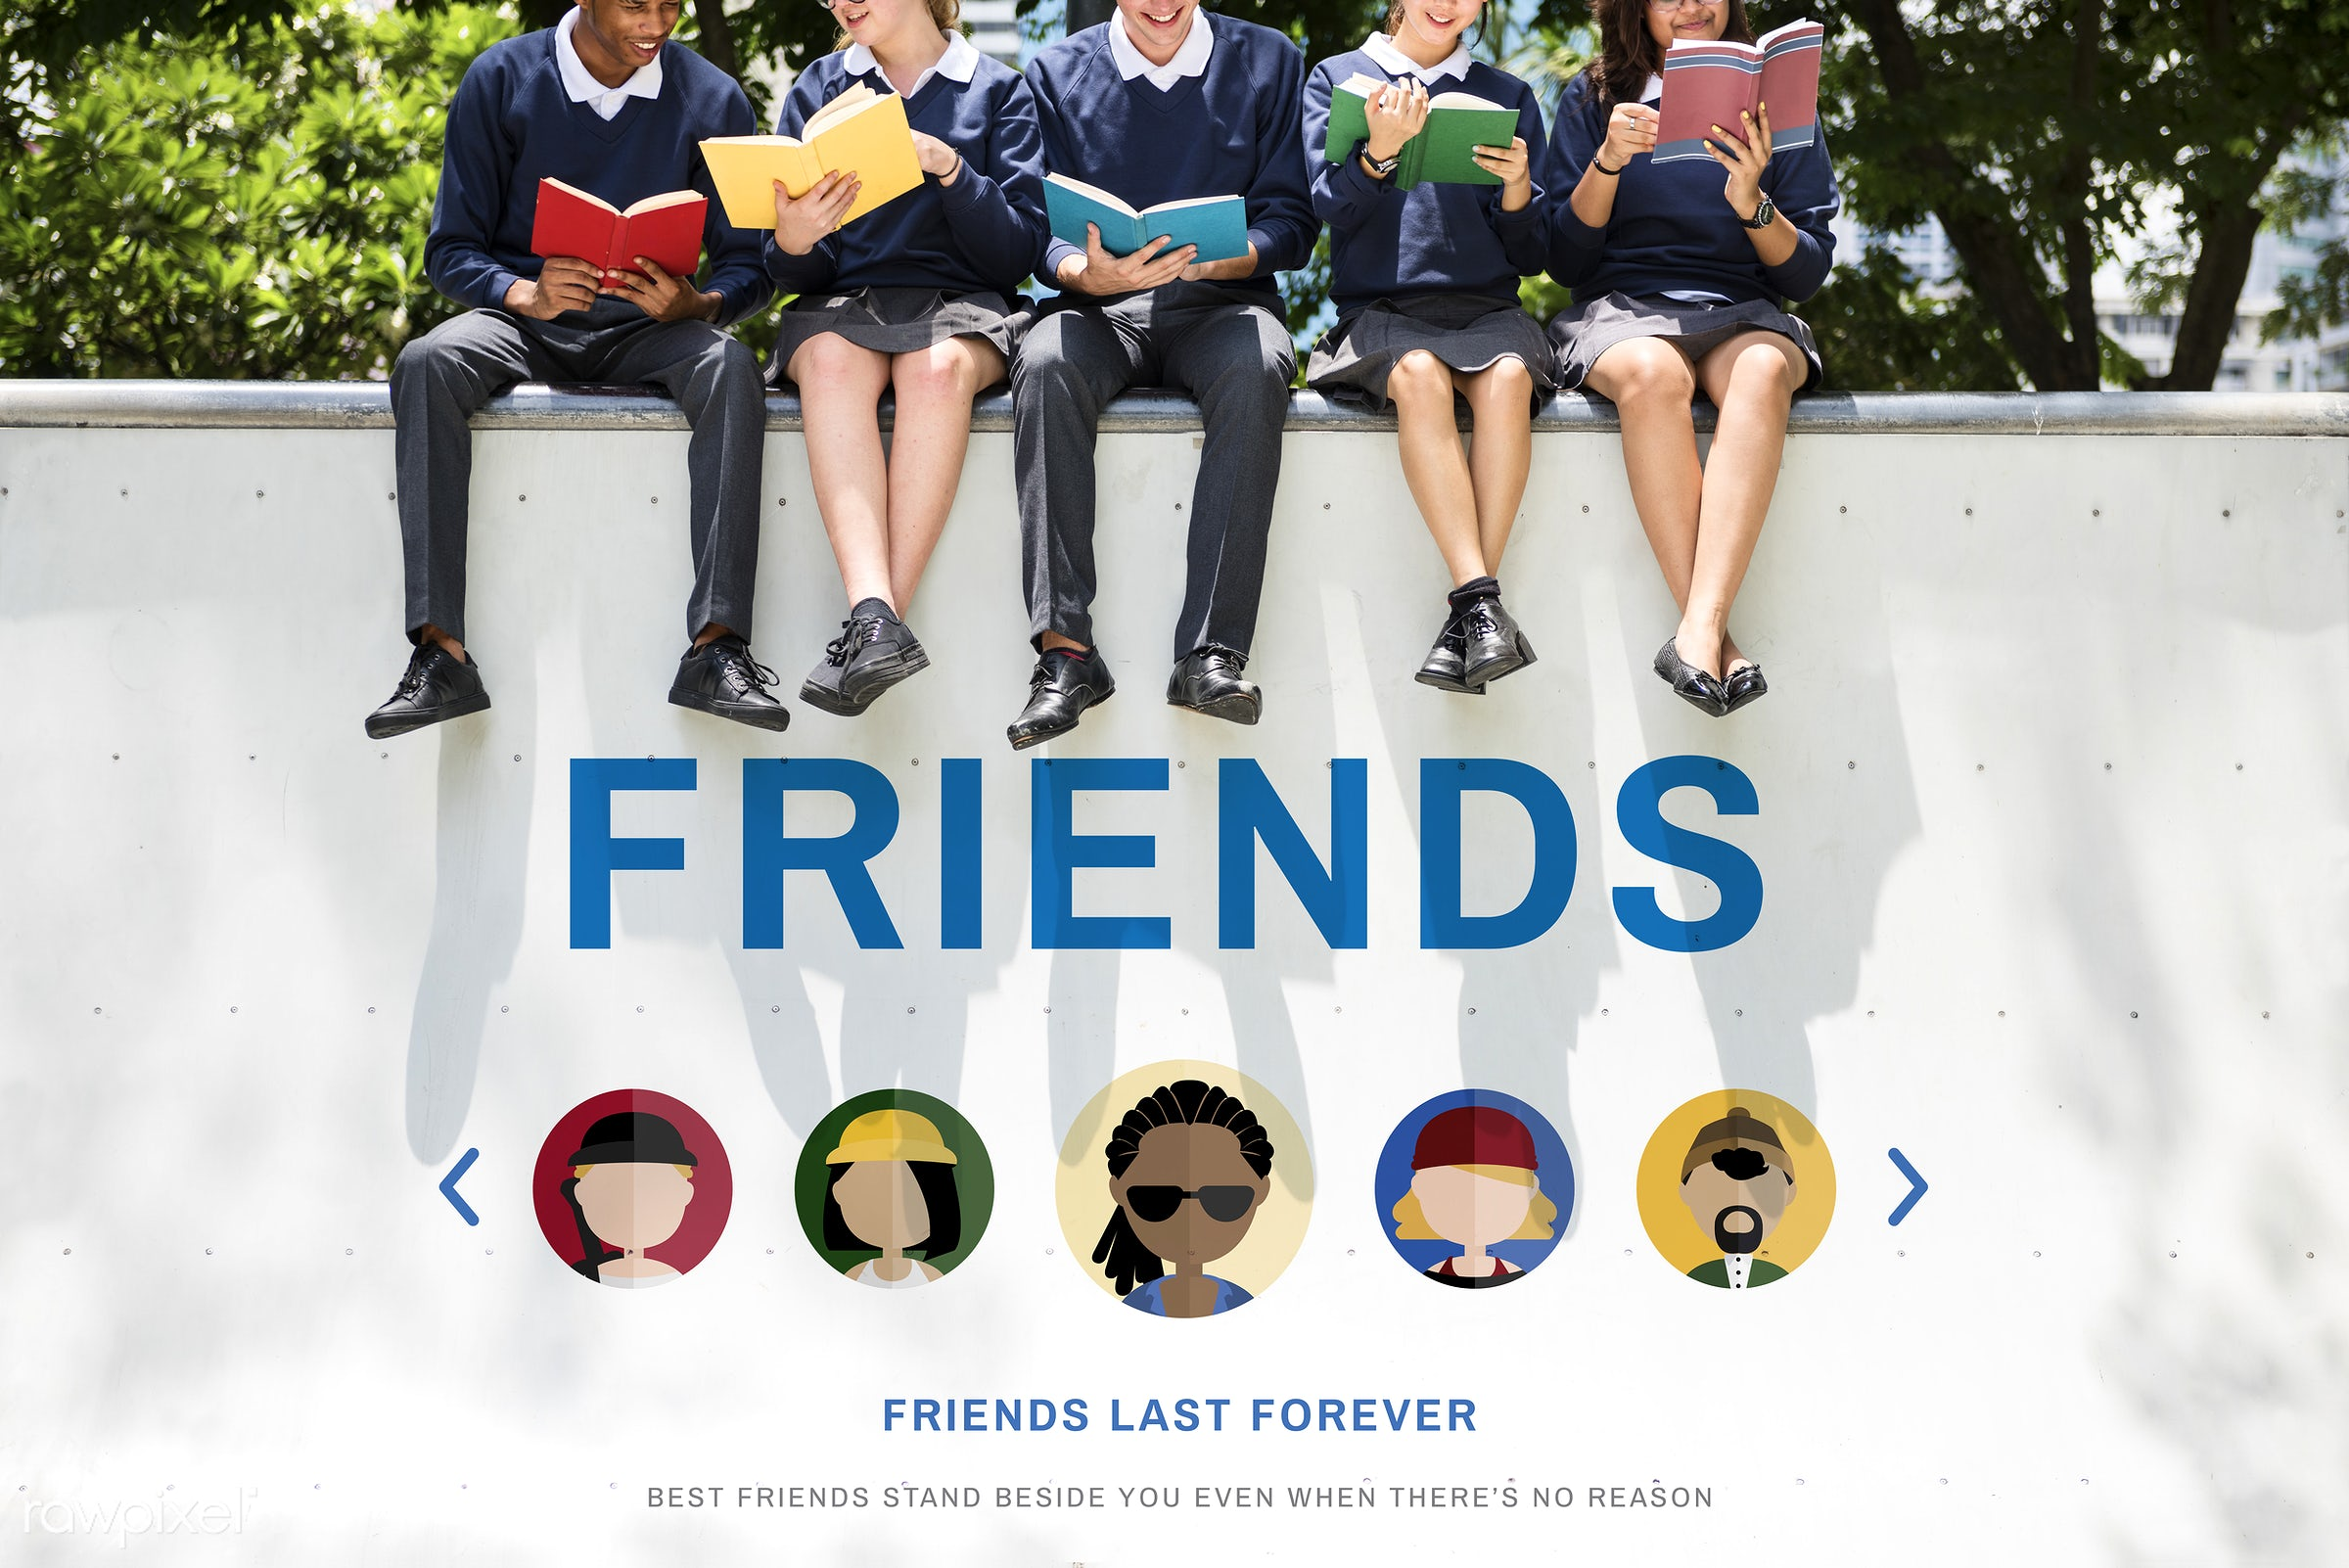 best, books, care, class, college, communication, community, connection, different, diversity, forever, friends, friendship...